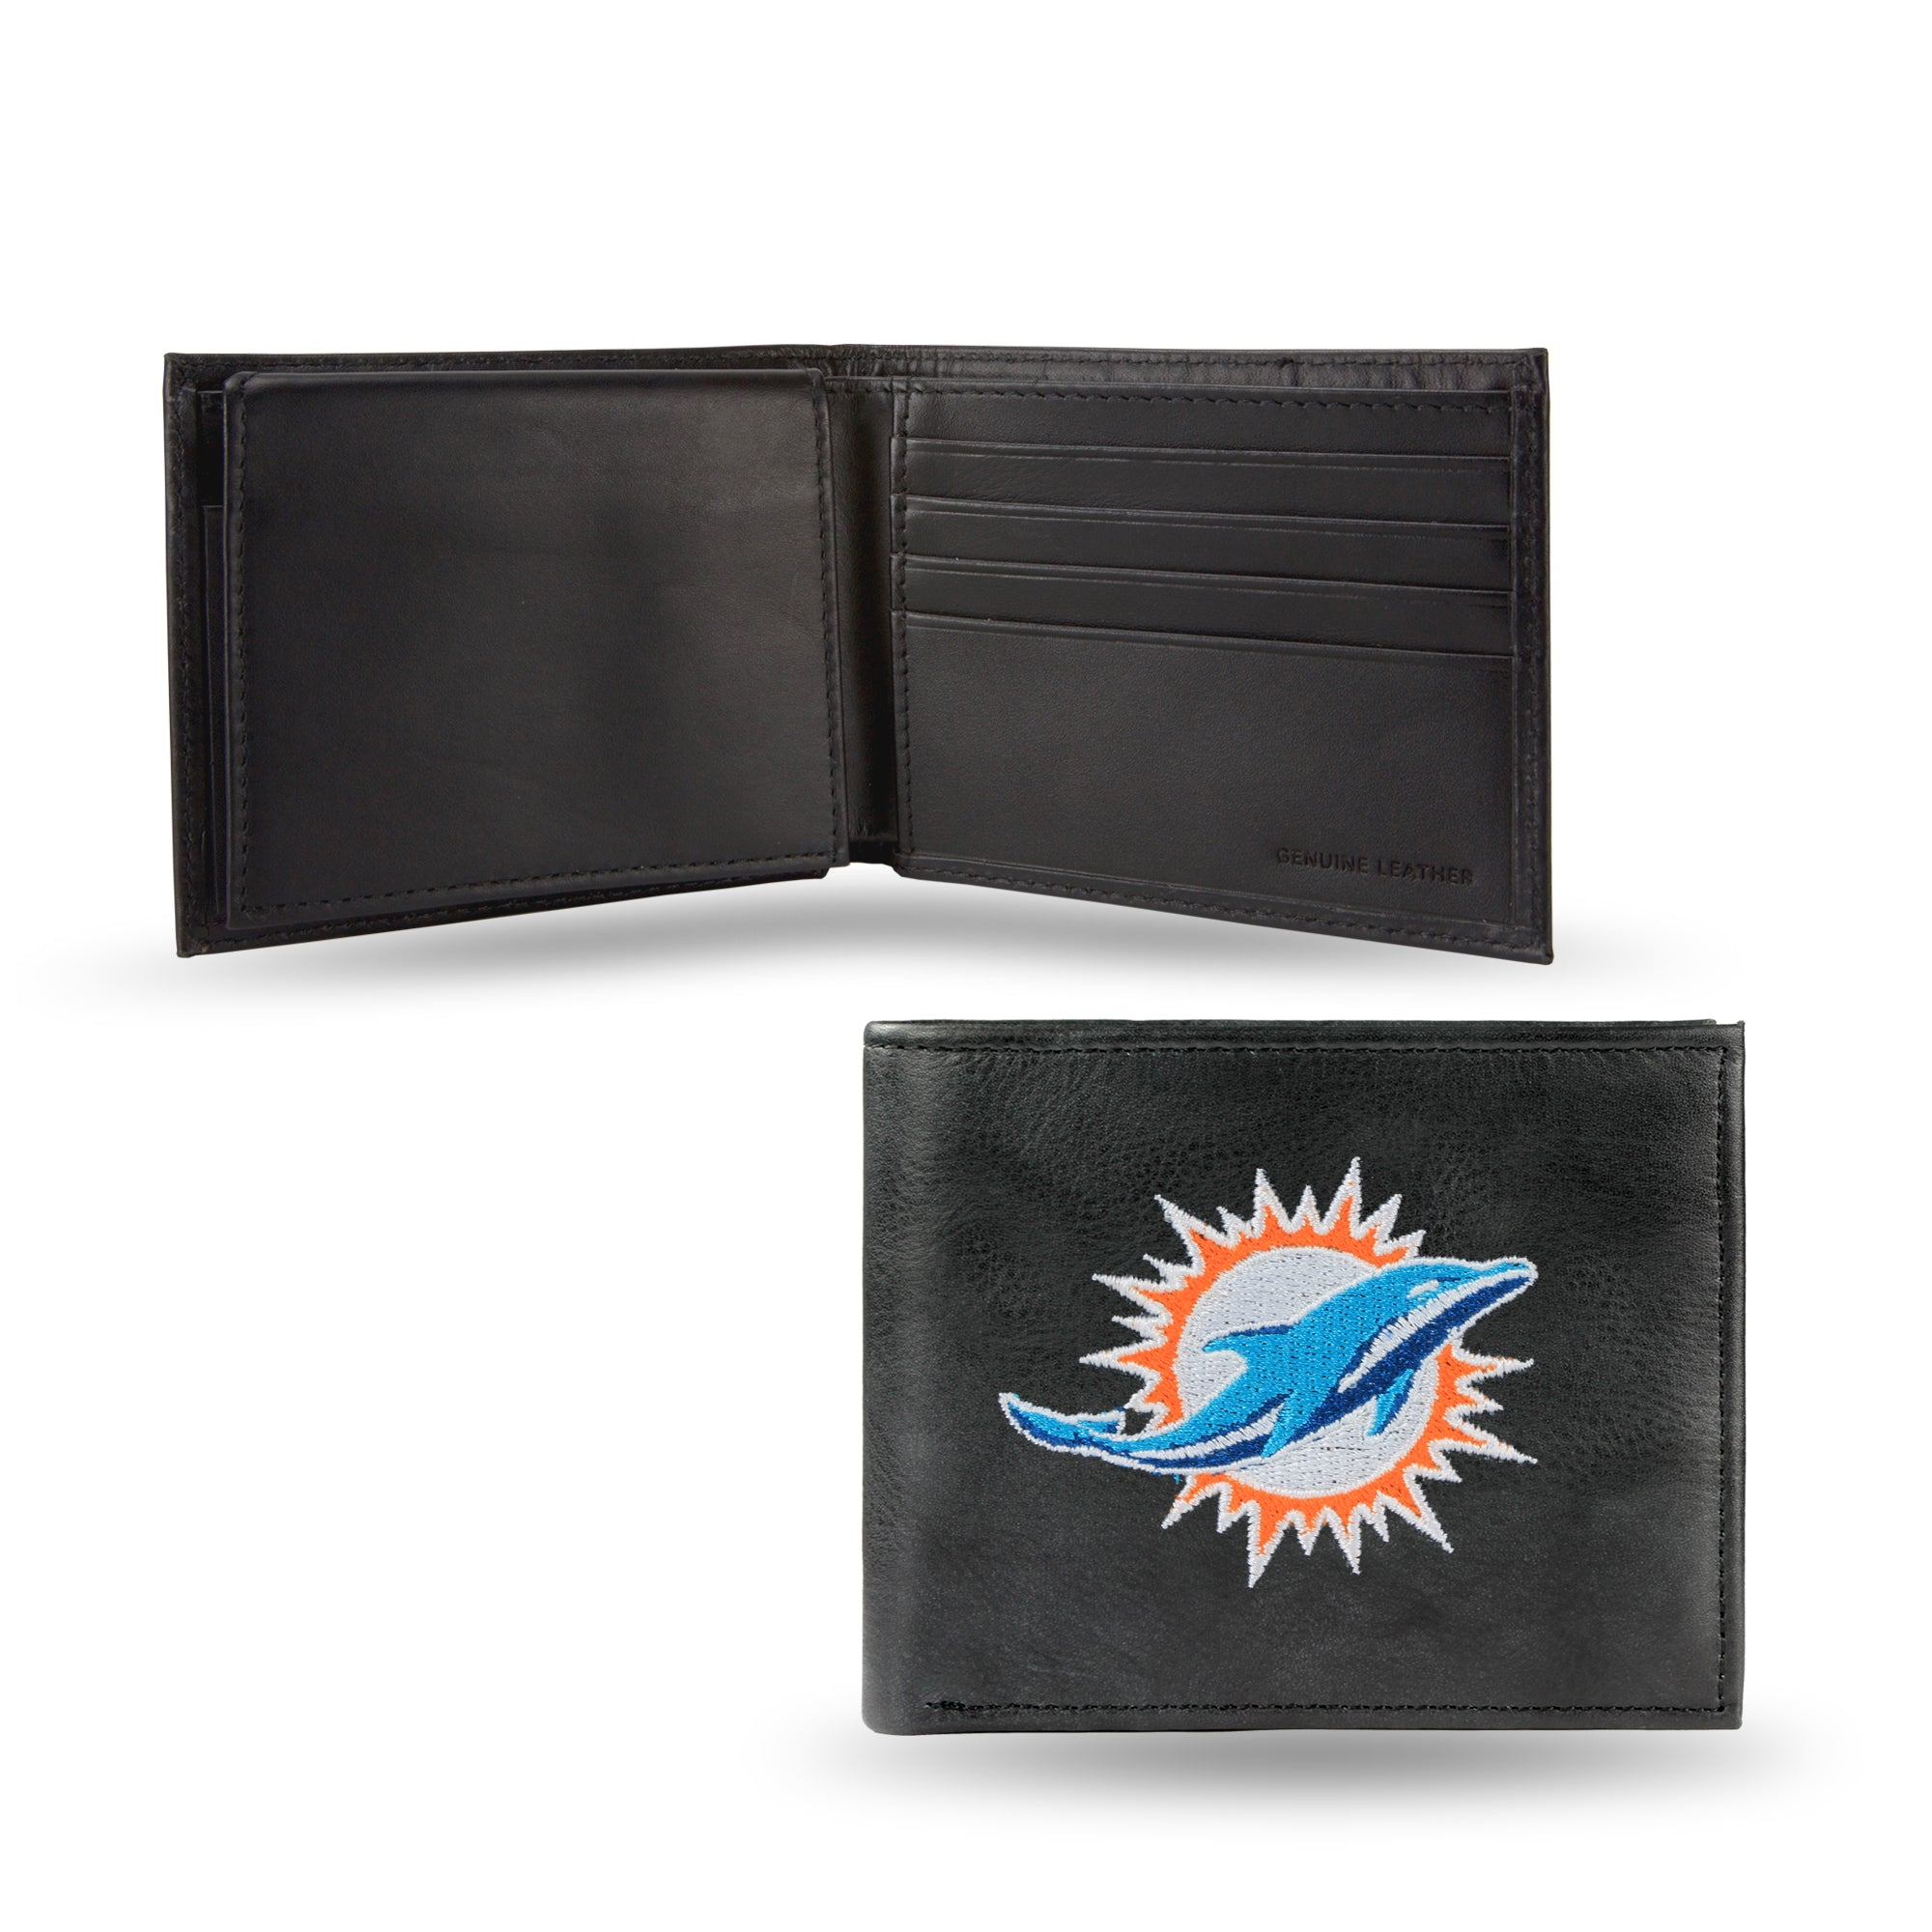 NFL Miami Dolphins Embroidered Billfold / Wallet